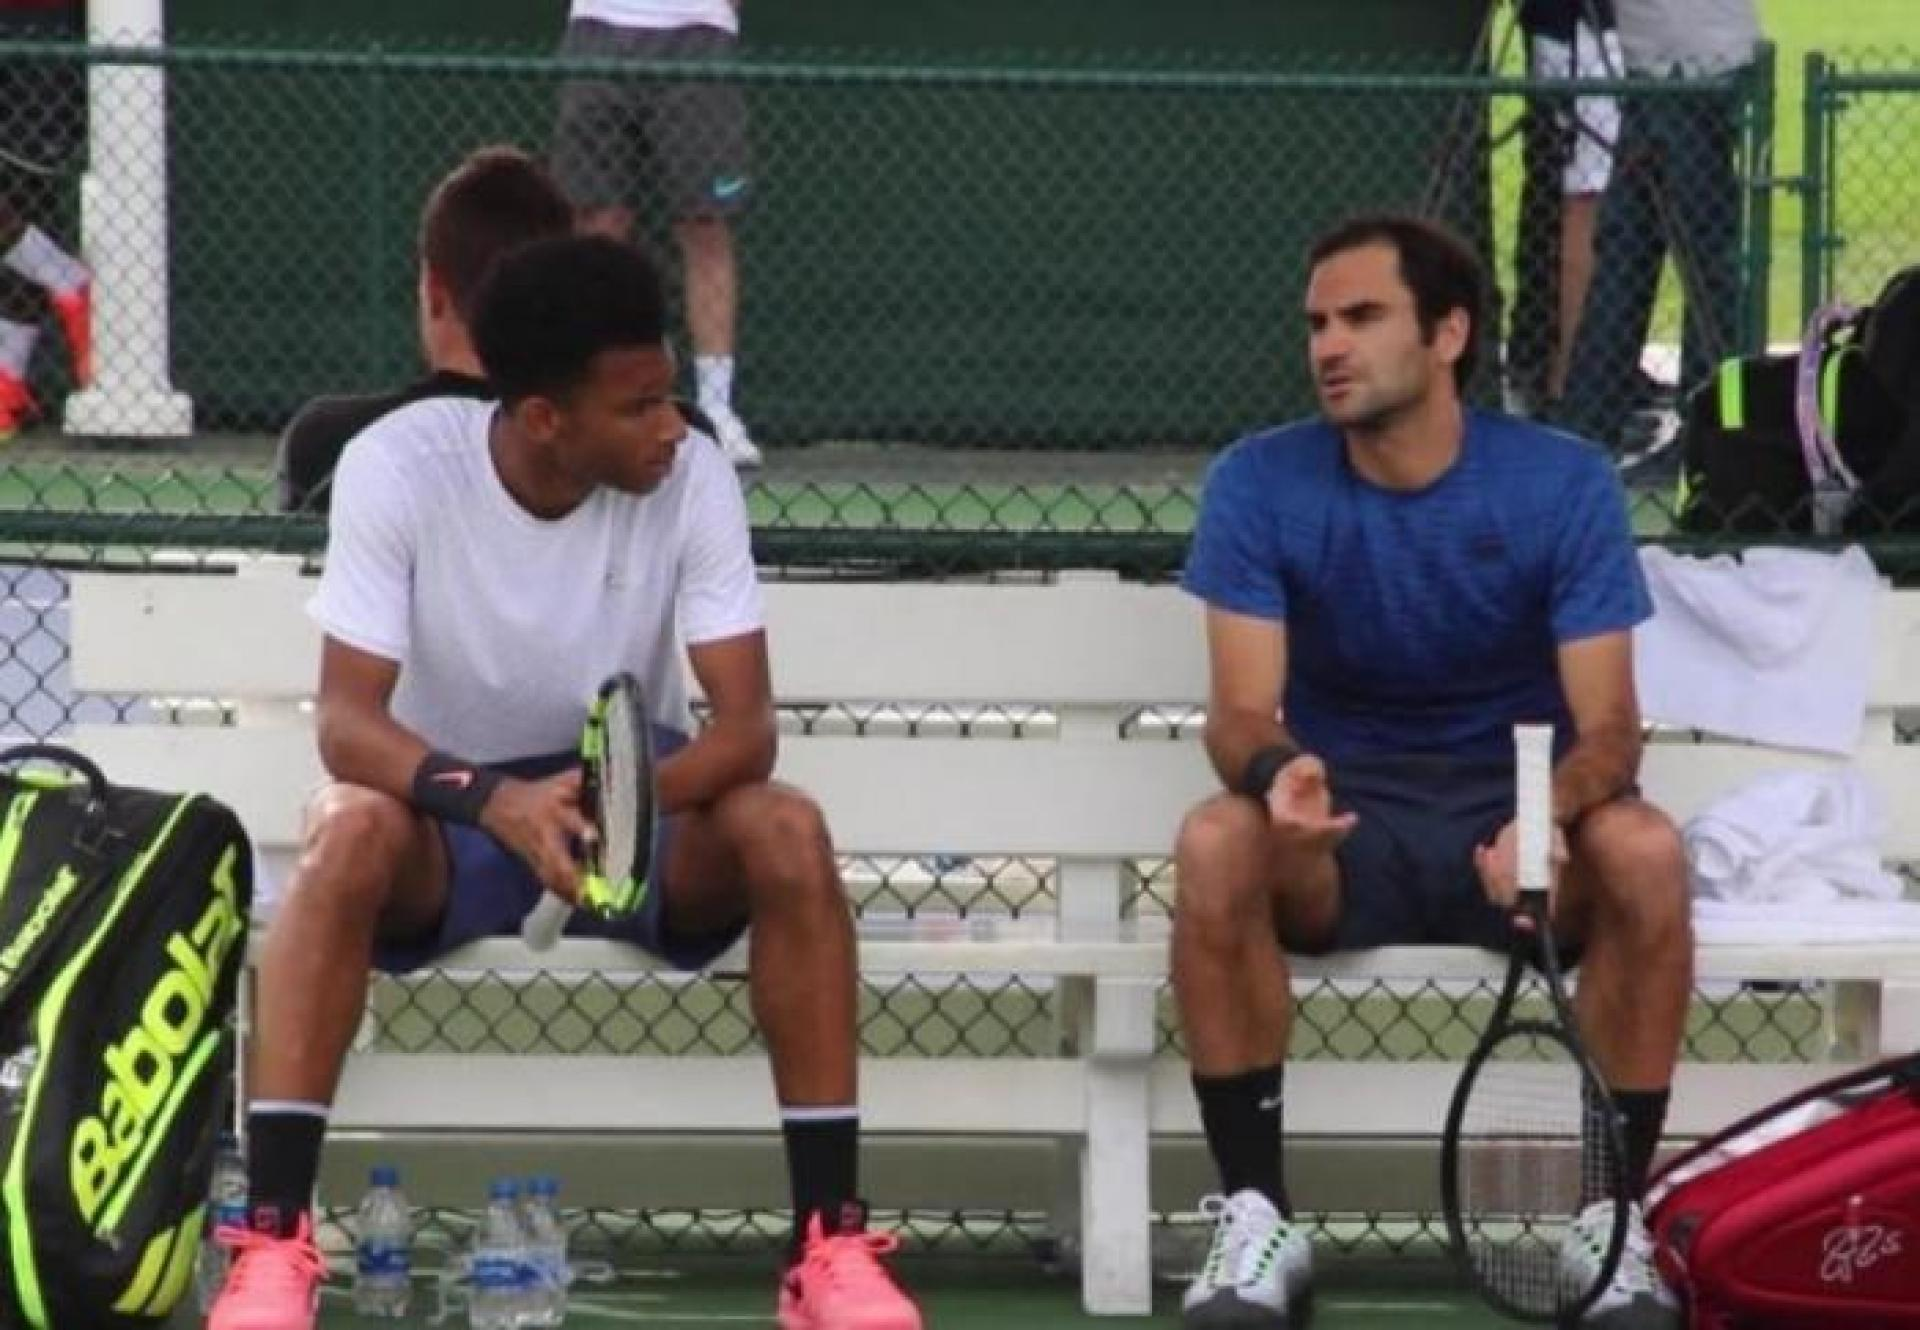 Auger-Aliassime:My next challenge is to beat Roger Federer, Rafael Nadal and Djokovic